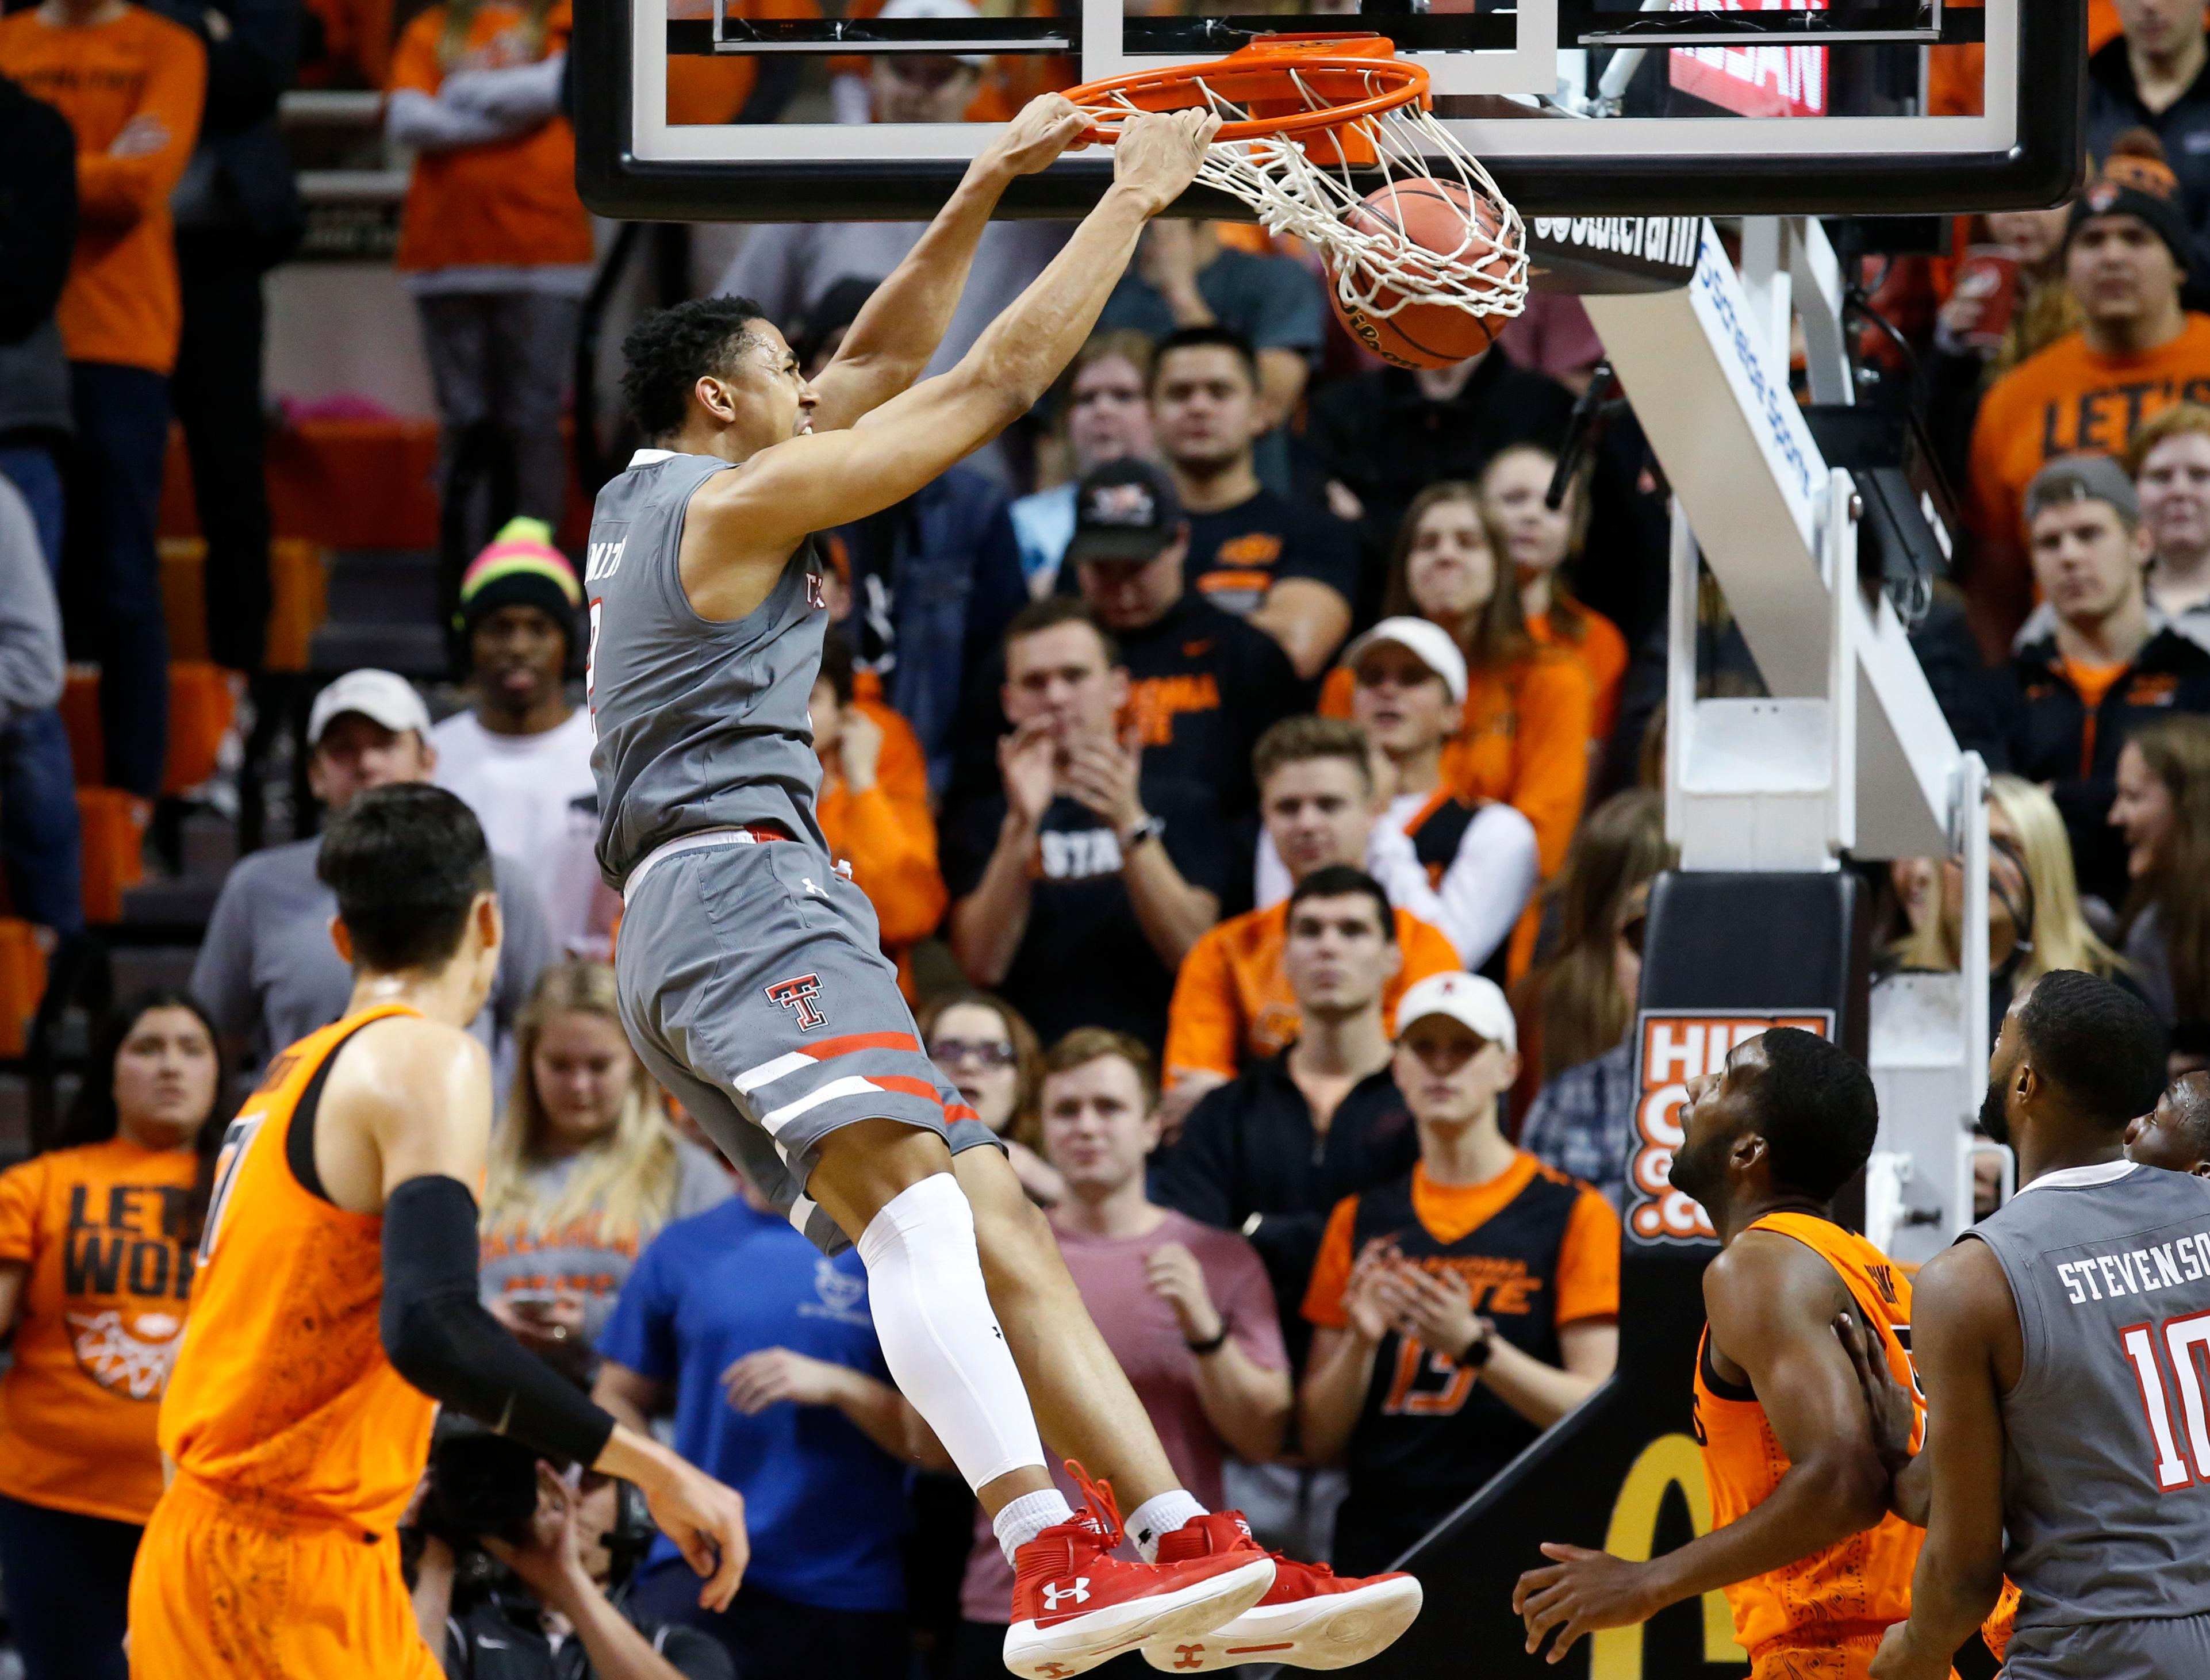 Texas Tech guard Zhaire Smith dunks between Oklahoma State guard Lindy Waters III, left, and guard Tavarius Shine, second from right, during the first half of an NCAA college basketball game in Stillwater, Okla., Wednesday, Feb. 21, 2018. (AP Photo/Sue Ogrocki)